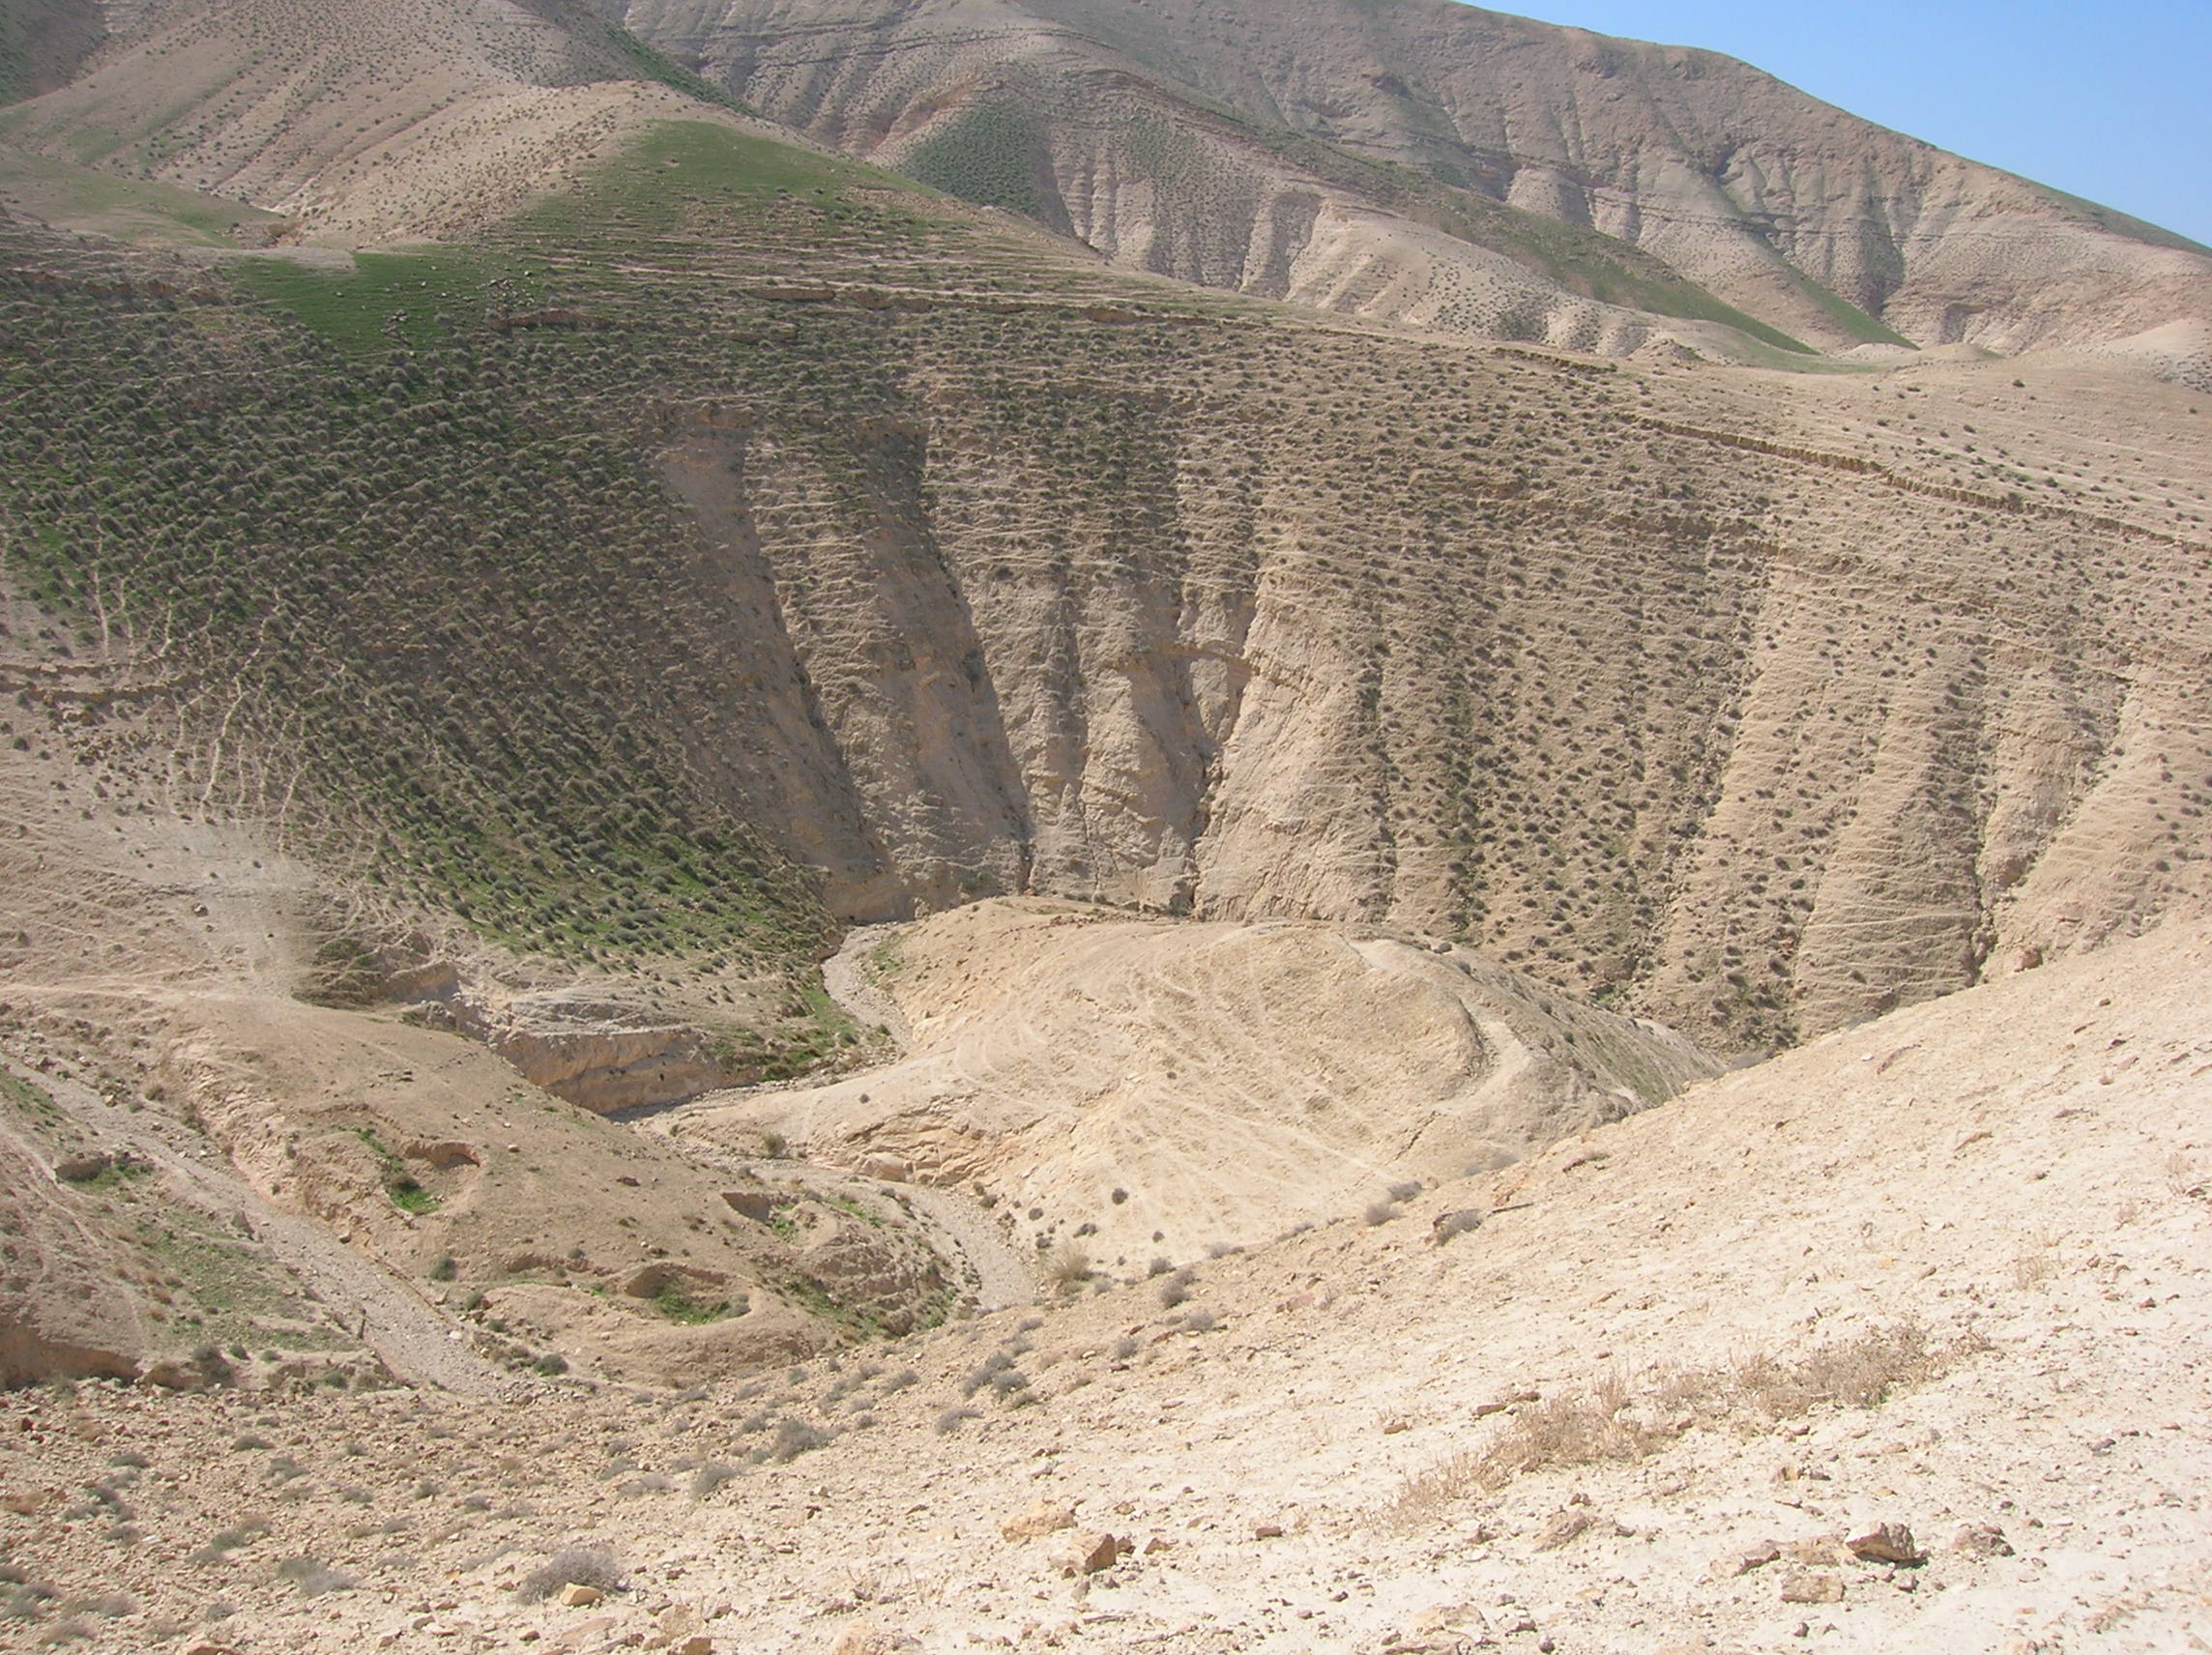 an overview of desertification Desertification, land degradation in arid, semi-arid, and dry sub-humid regions, is a global environmental problem accurate assessment of the status, change, and trend of desertification will be instrumental in developing global.